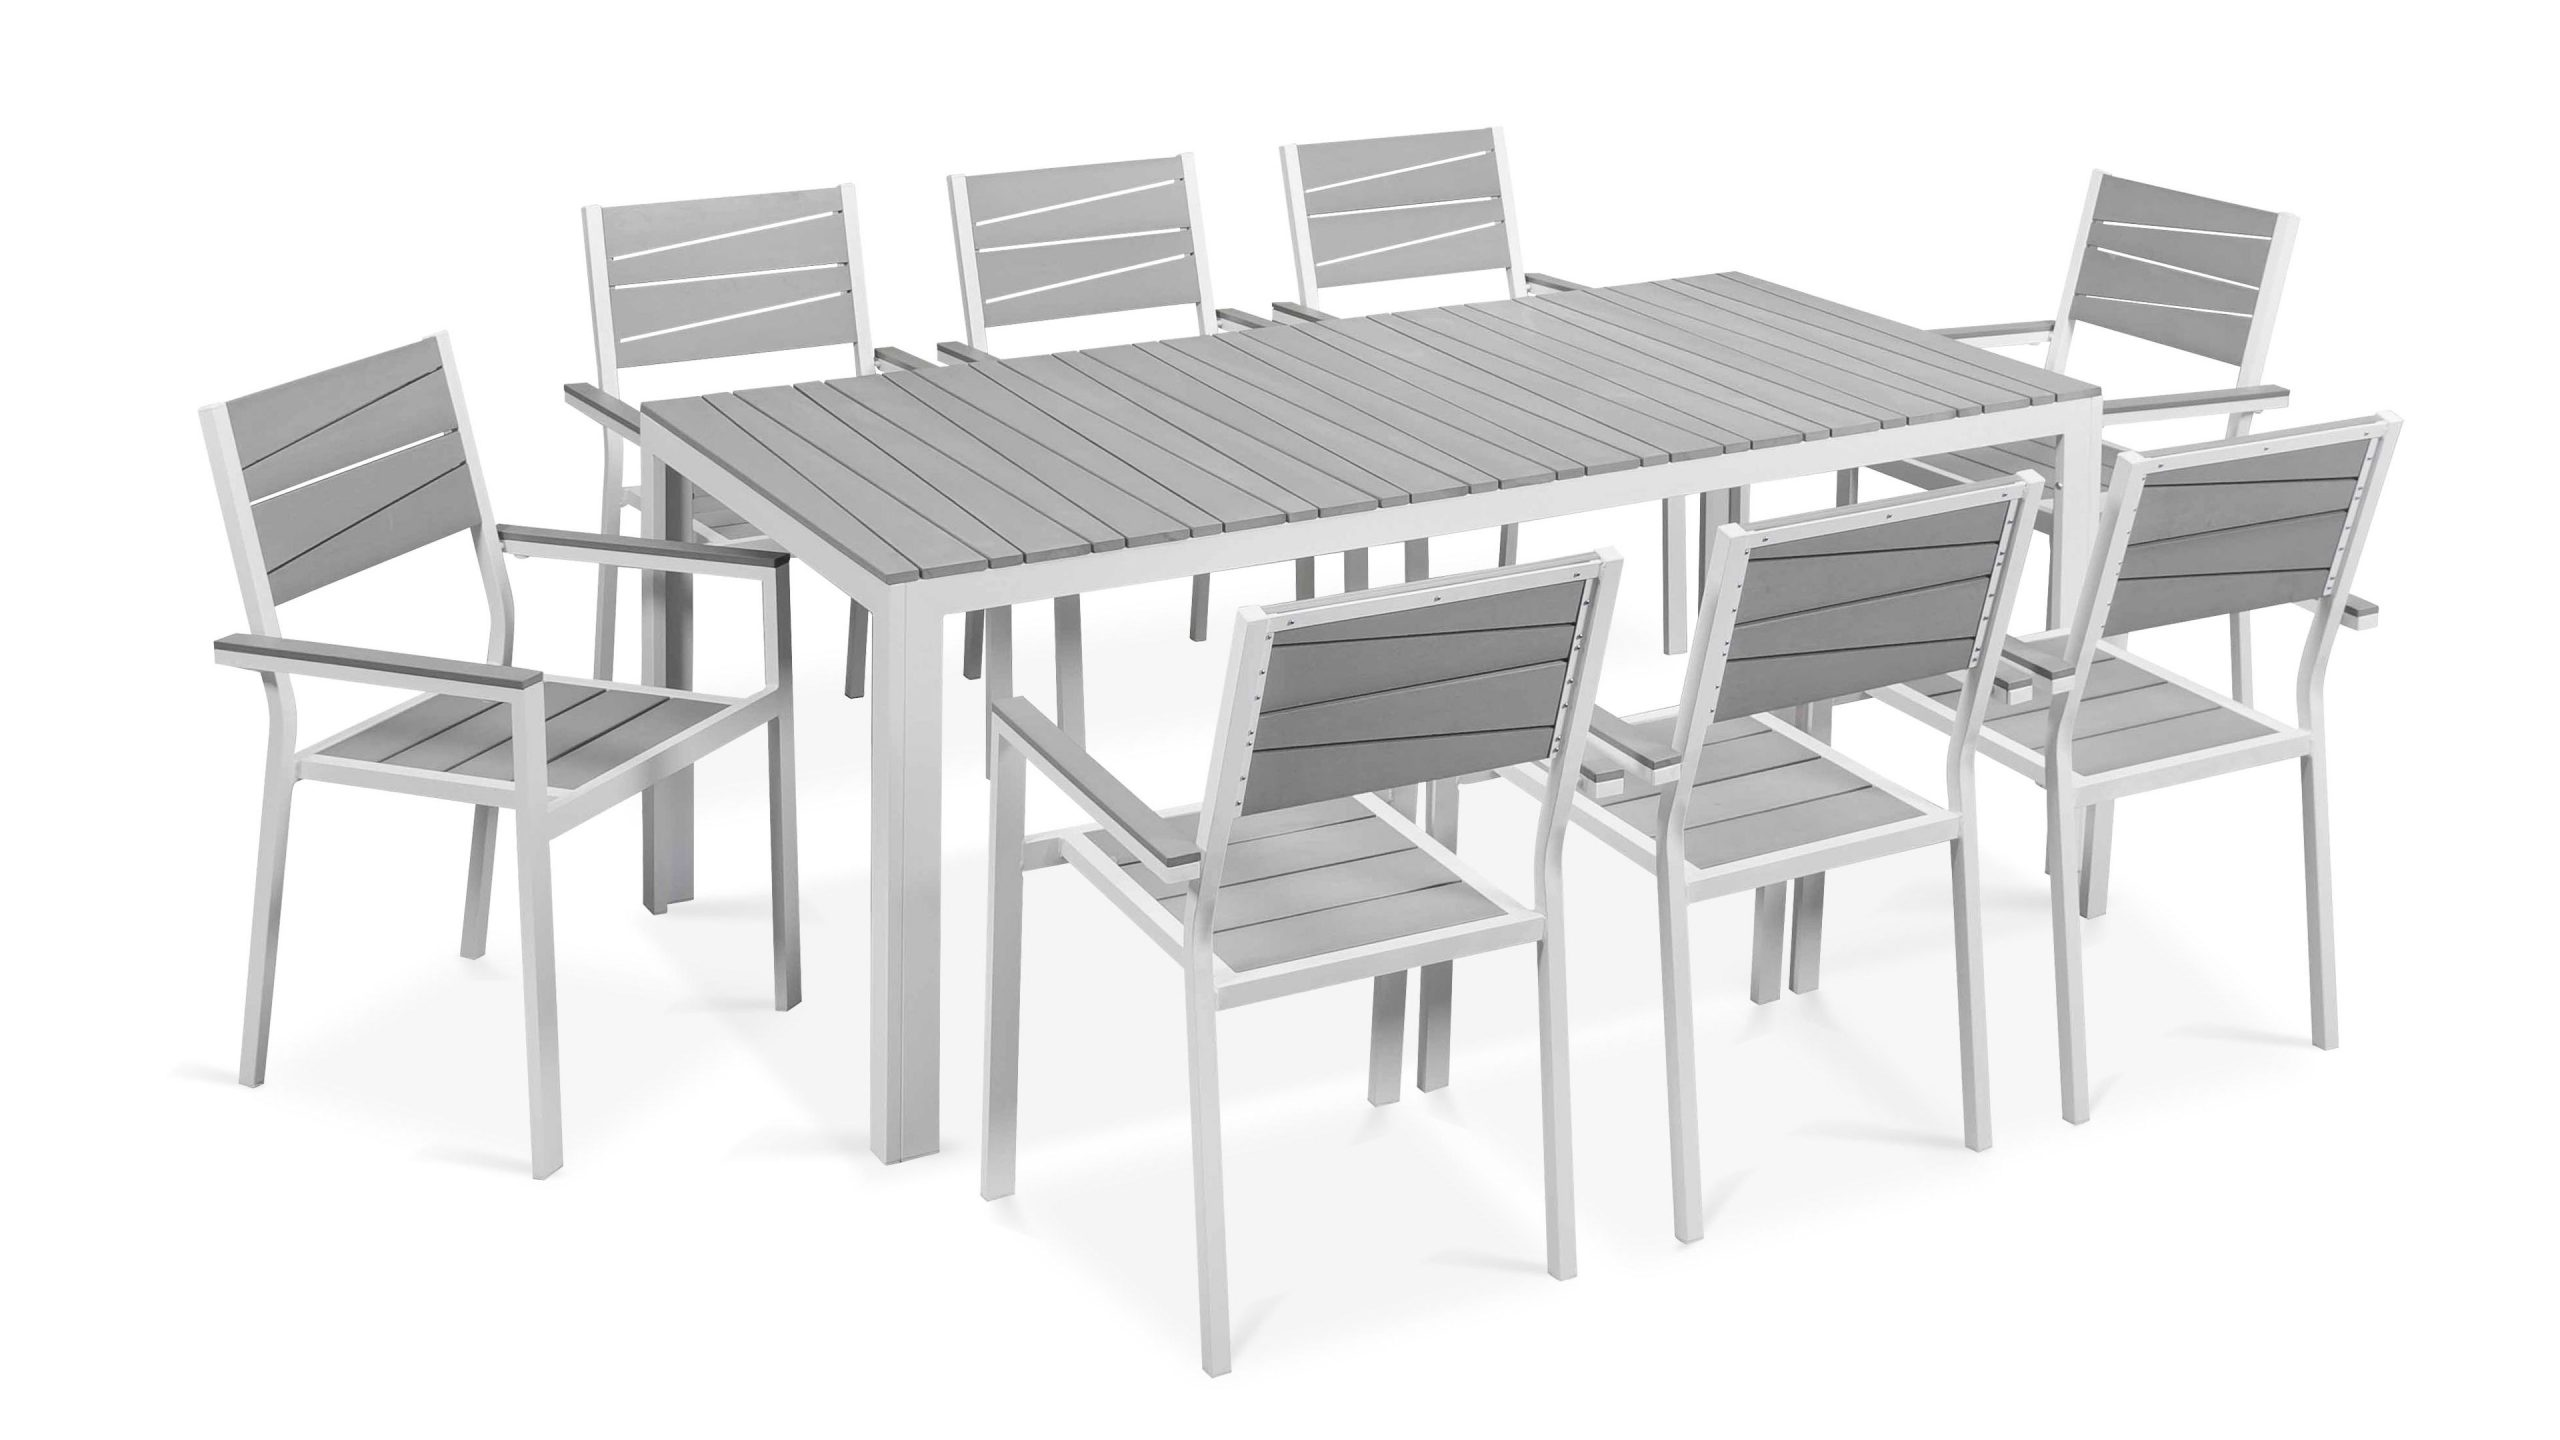 Table De Jardin 8 Places Aluminium Polywood encequiconcerne Table De Jardin Aluminium Et Composite